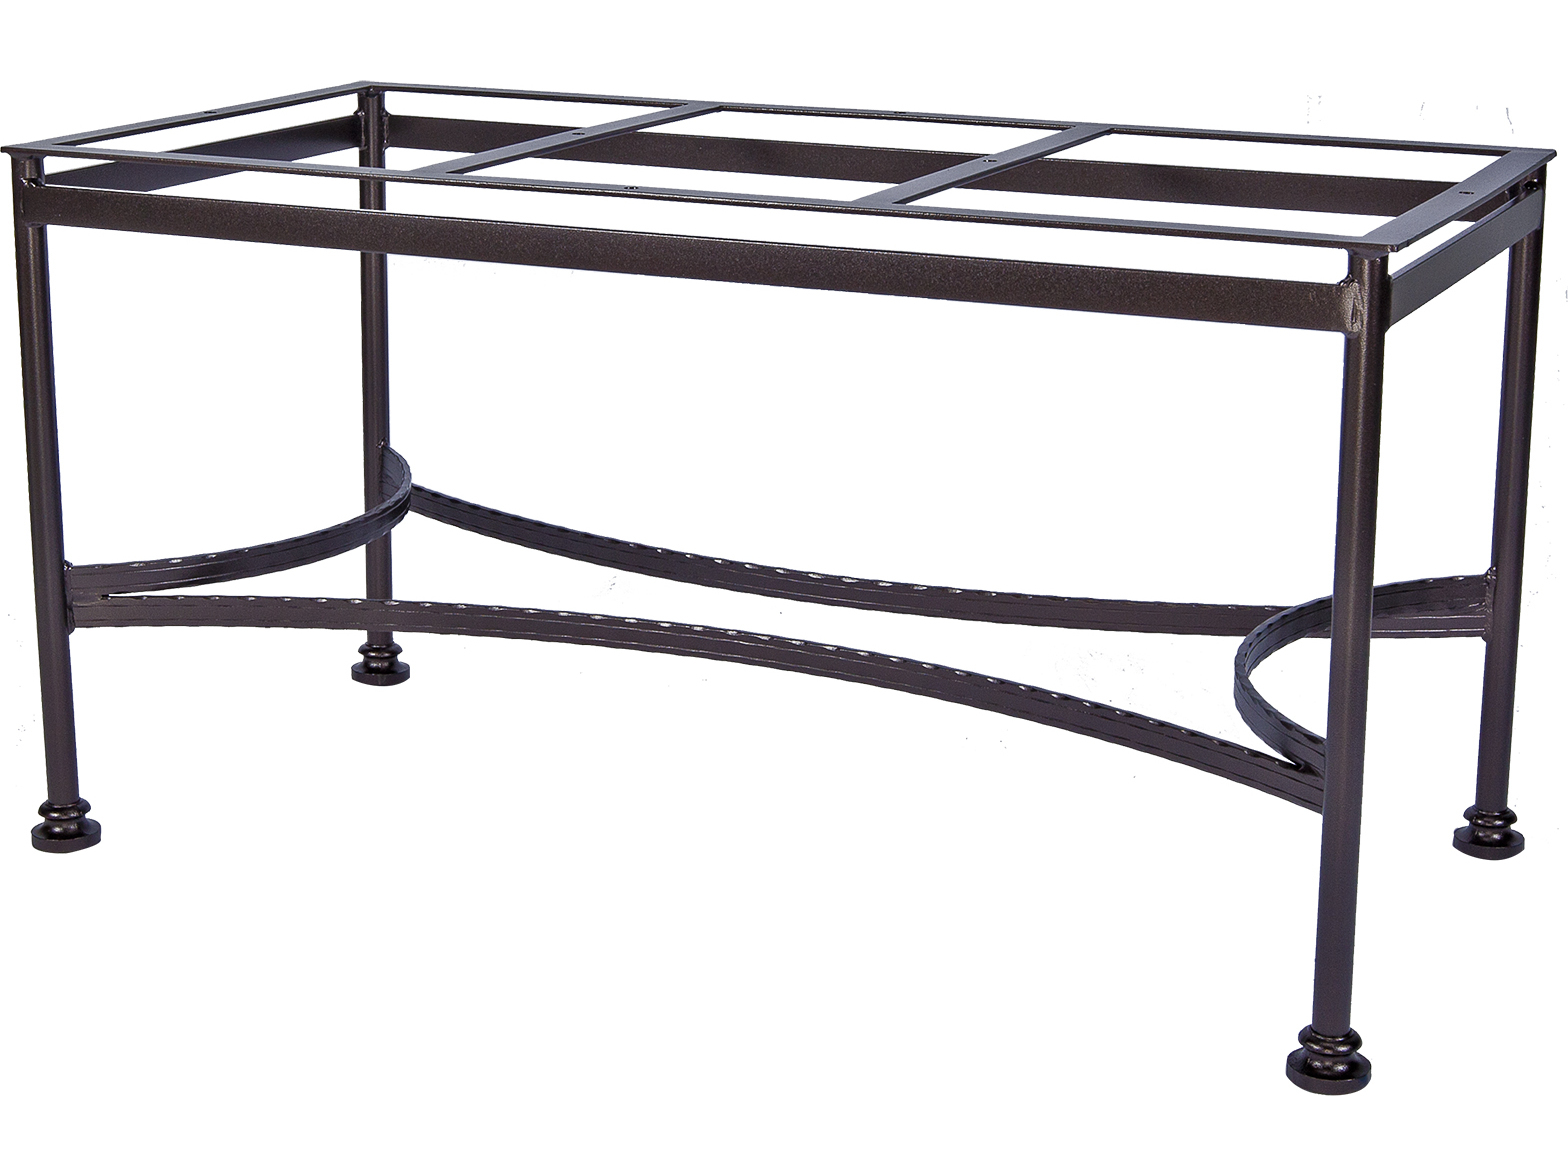 Picture of: Ow Lee Classico Wrought Iron Dining Table Base Ow9dt07